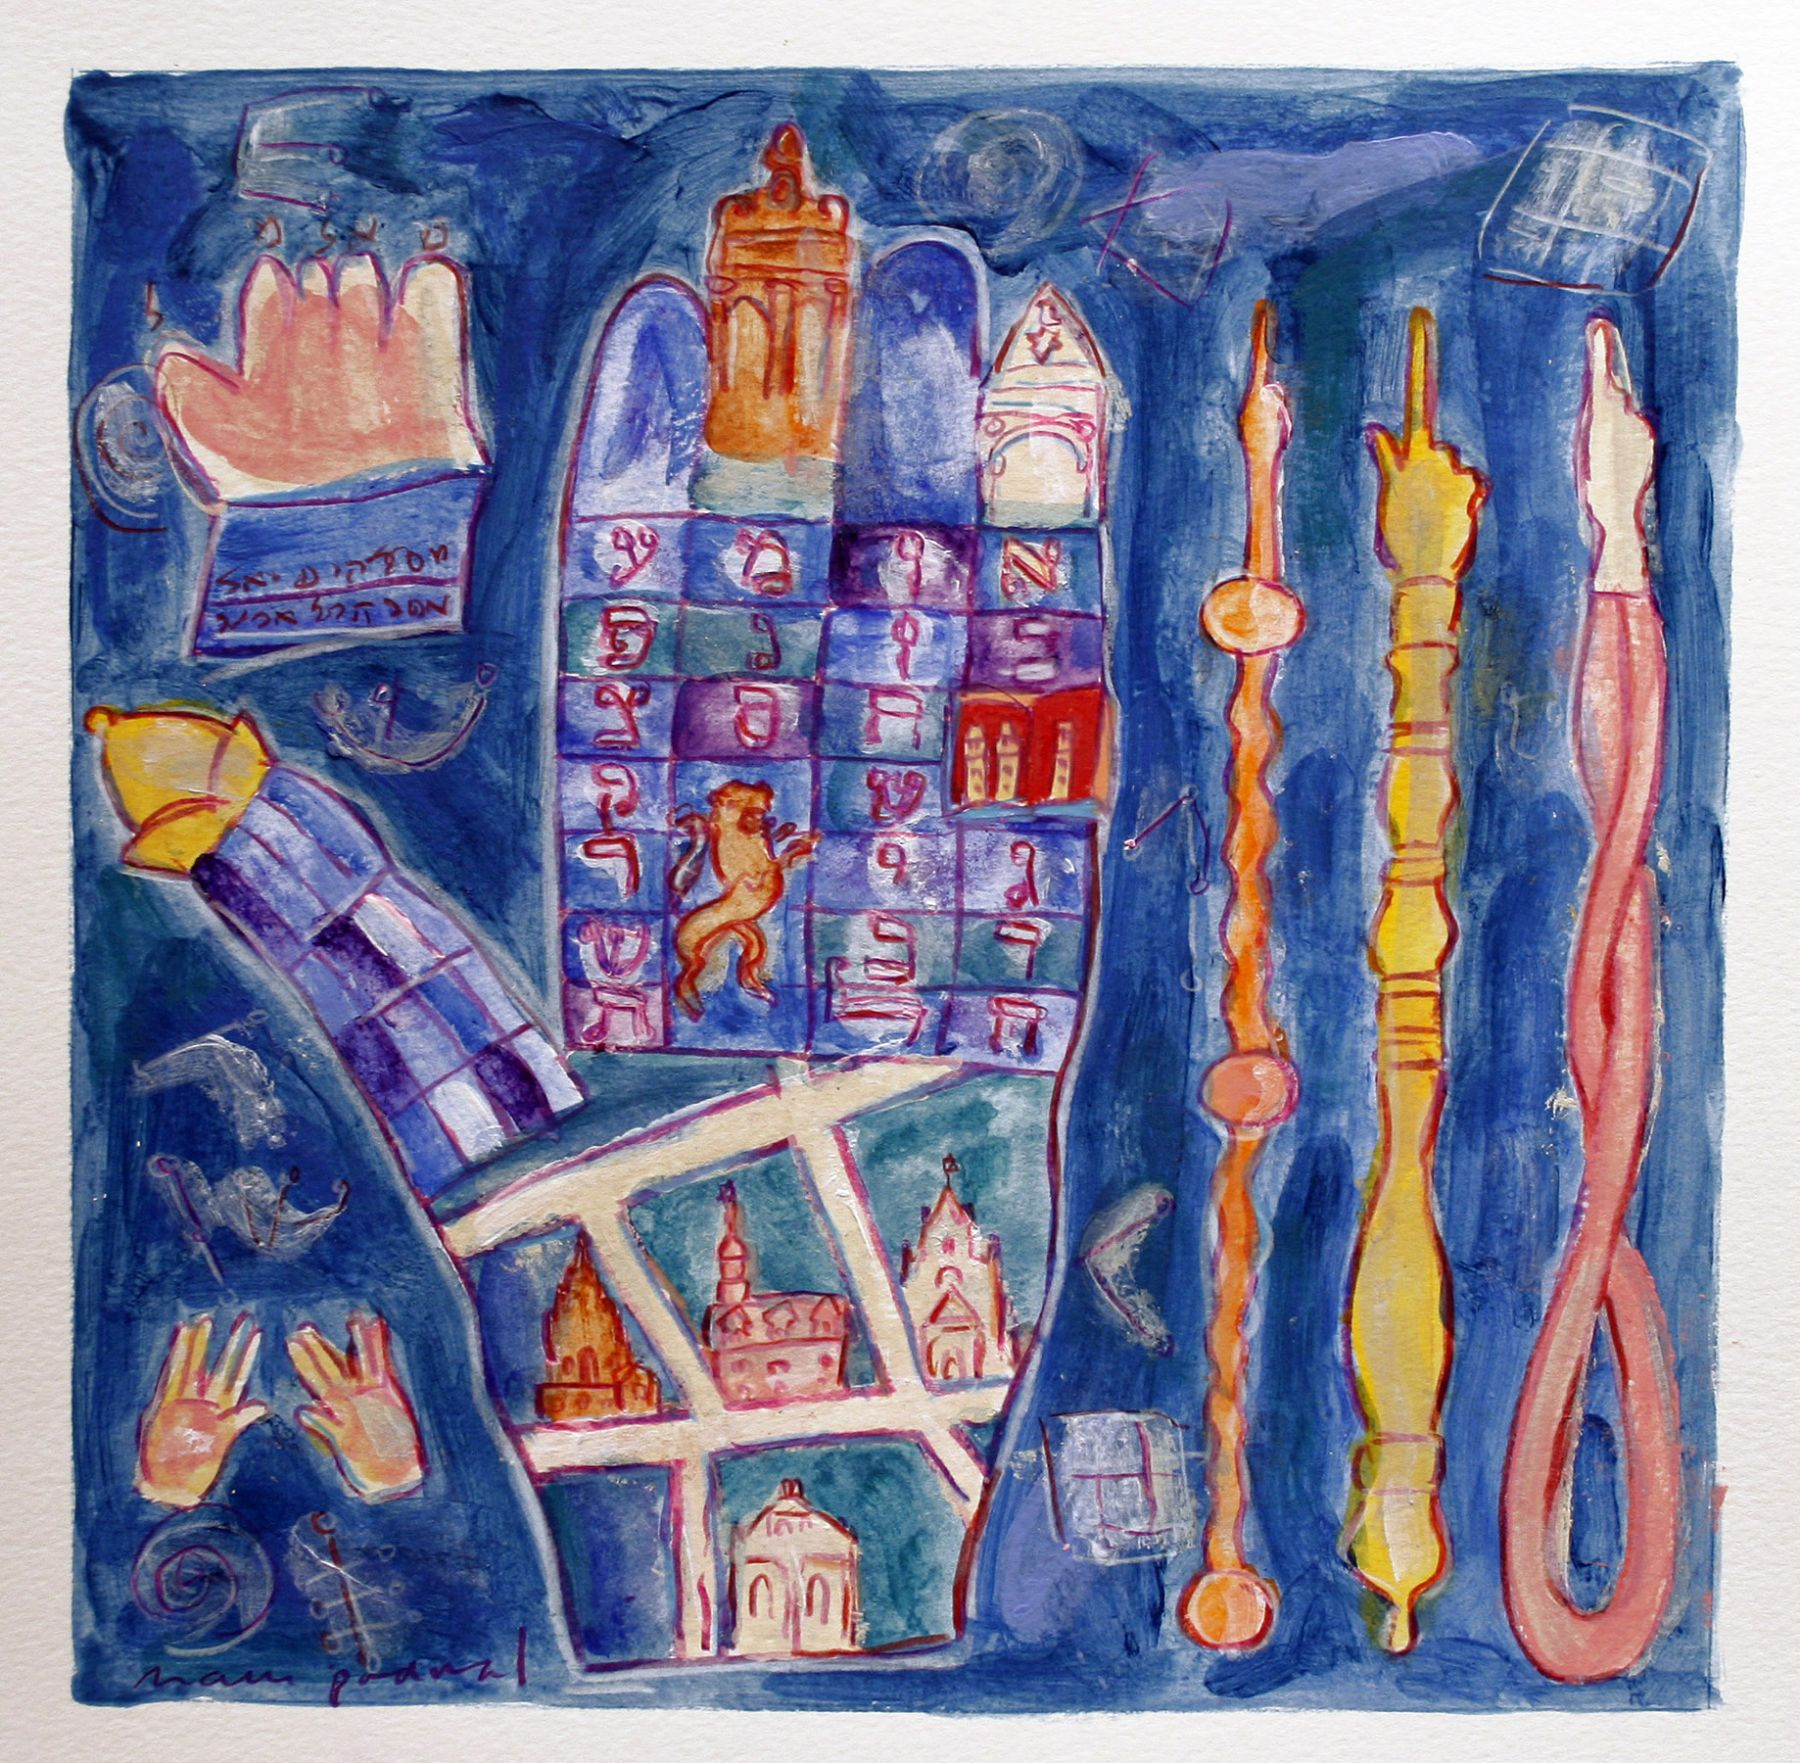 Mark Podwal, Magic Prague, 2008, acrylic, gouache and colored pencil on paper, 12 x 12 inches